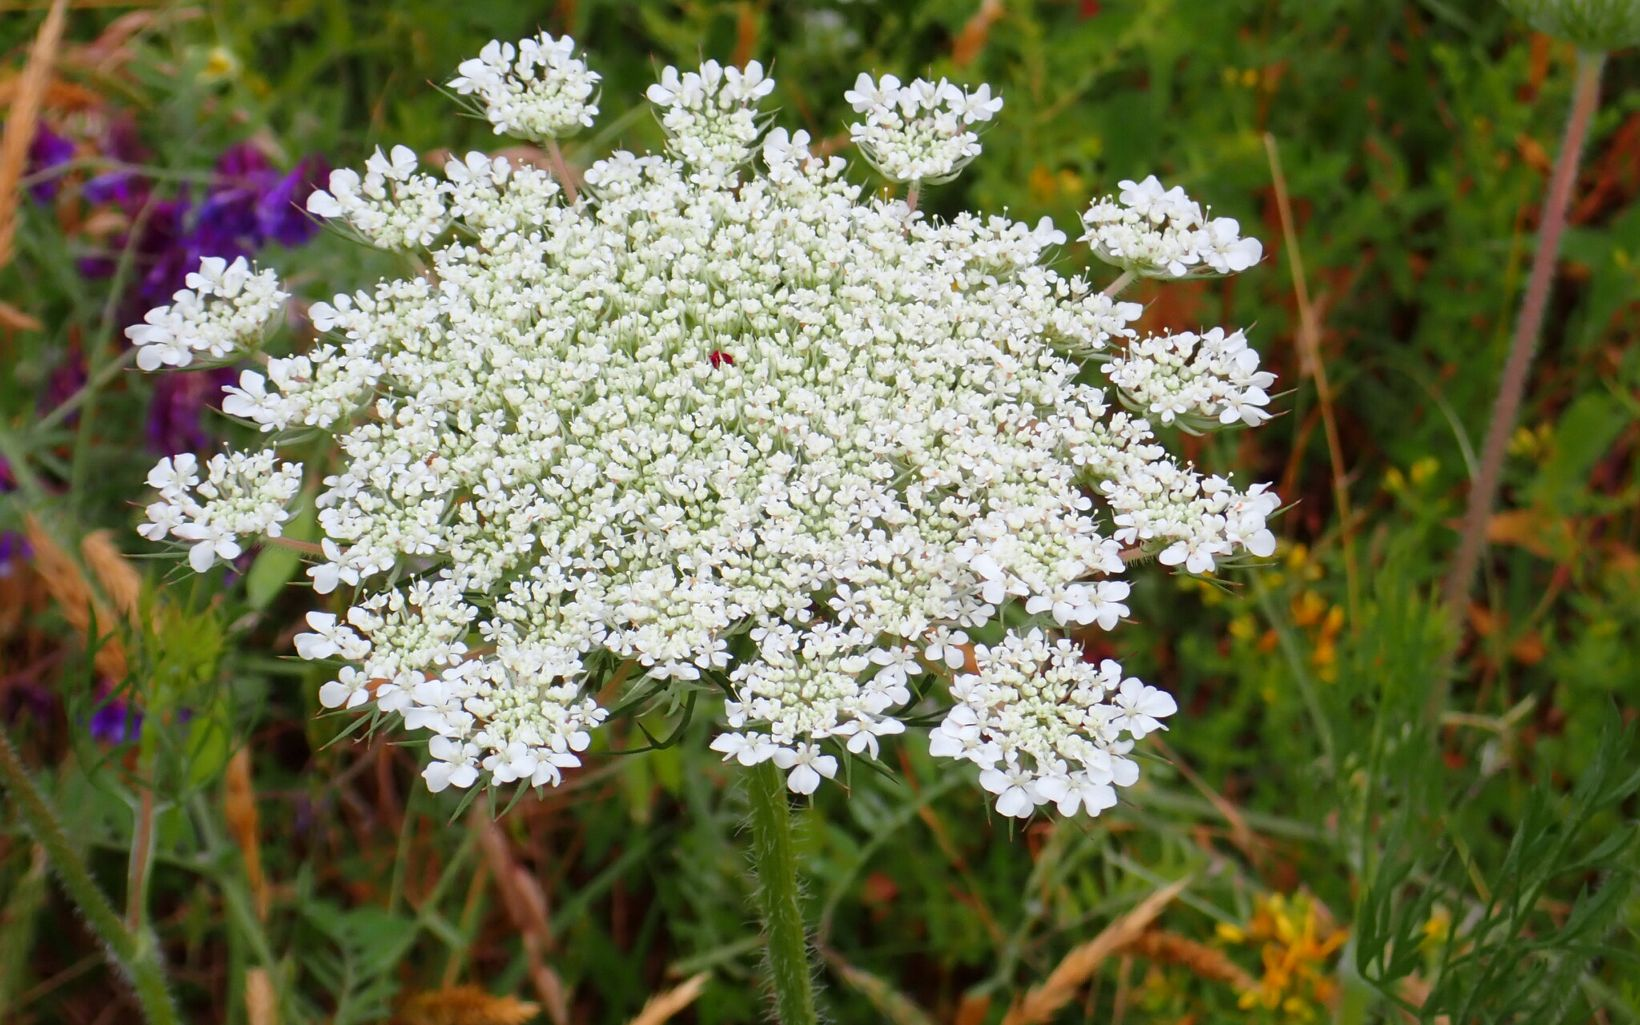 A cluster of tiny white flowers.